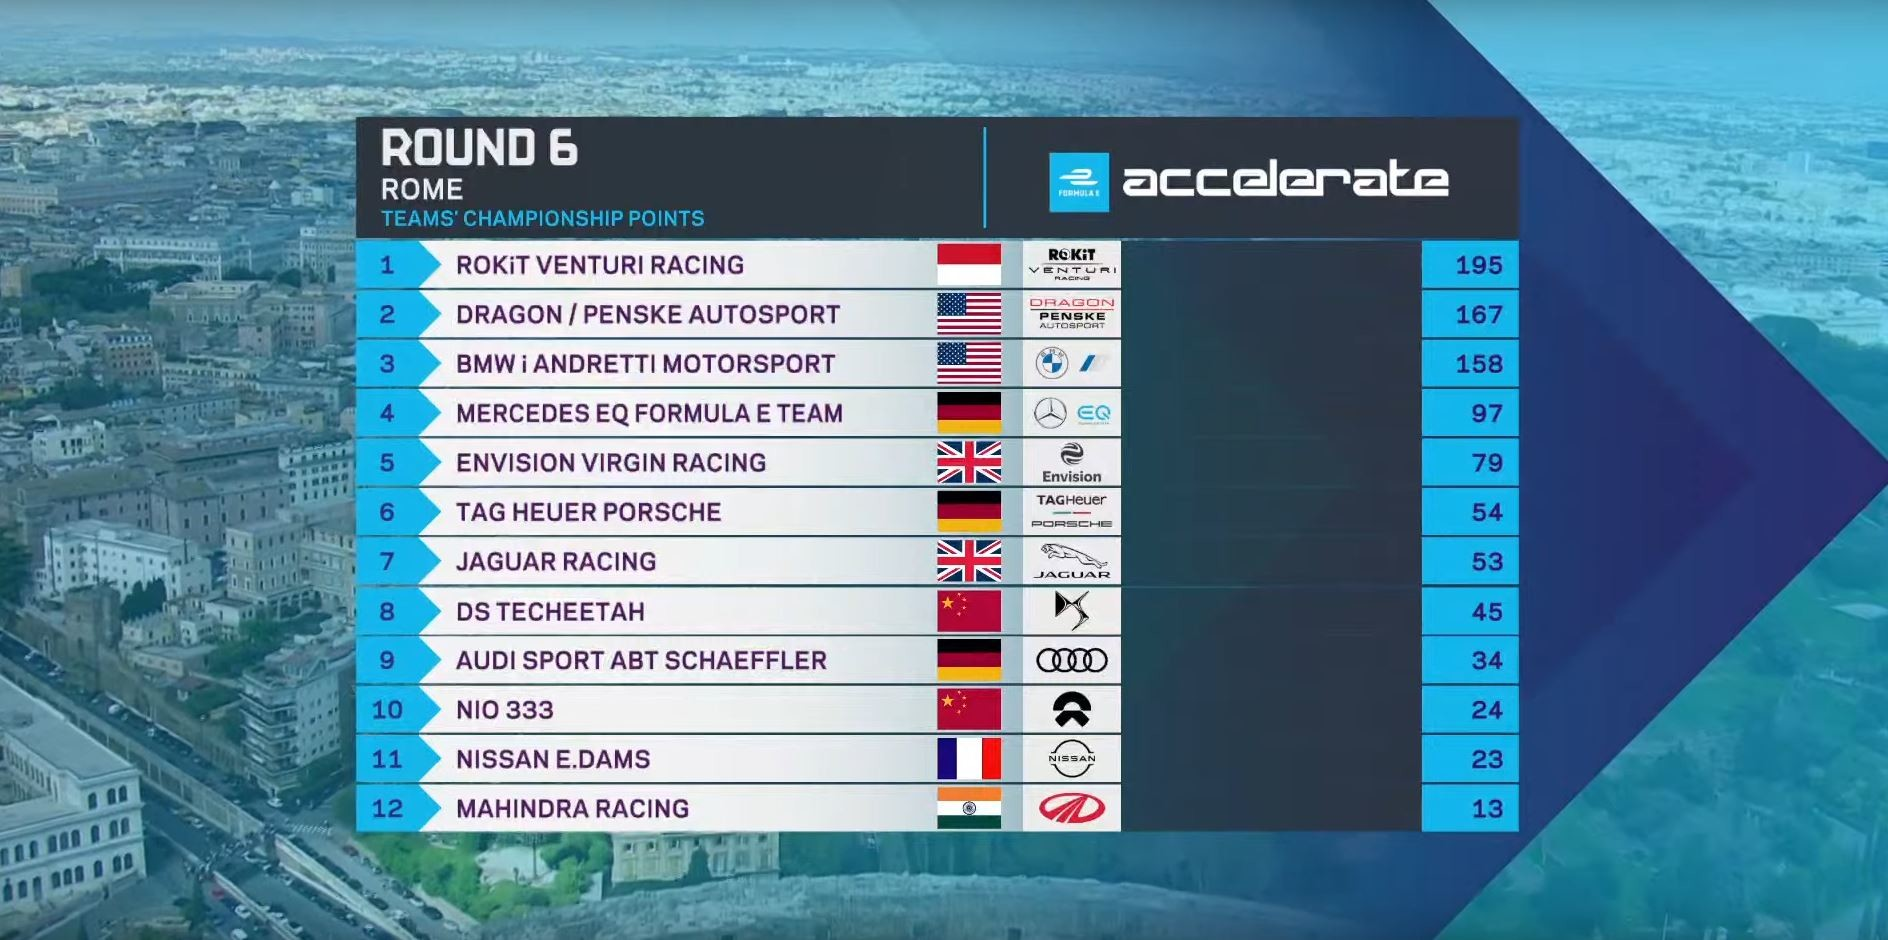 The final team standings of the championship.